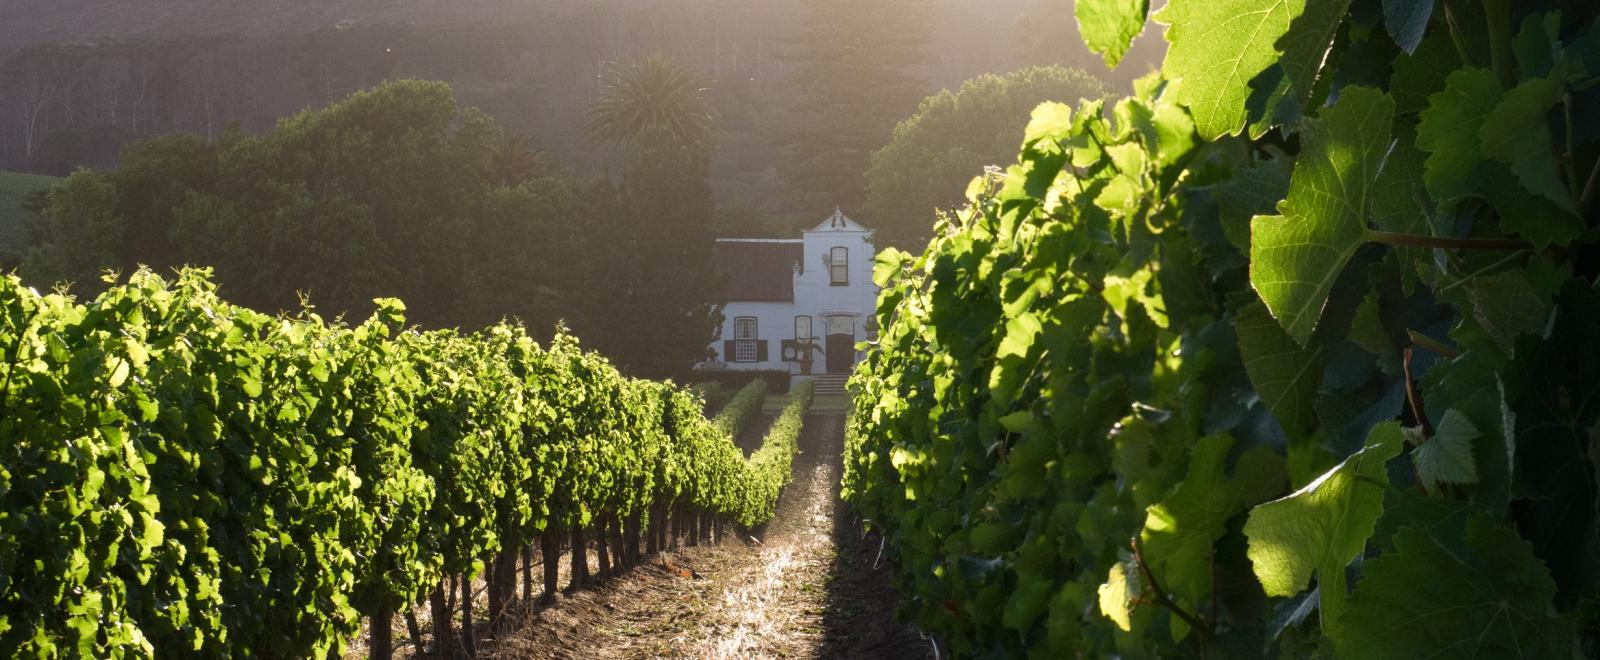 Learn about the ethical wine production in South Africa by visiting some of the wine farms in the Stellenbosch area.